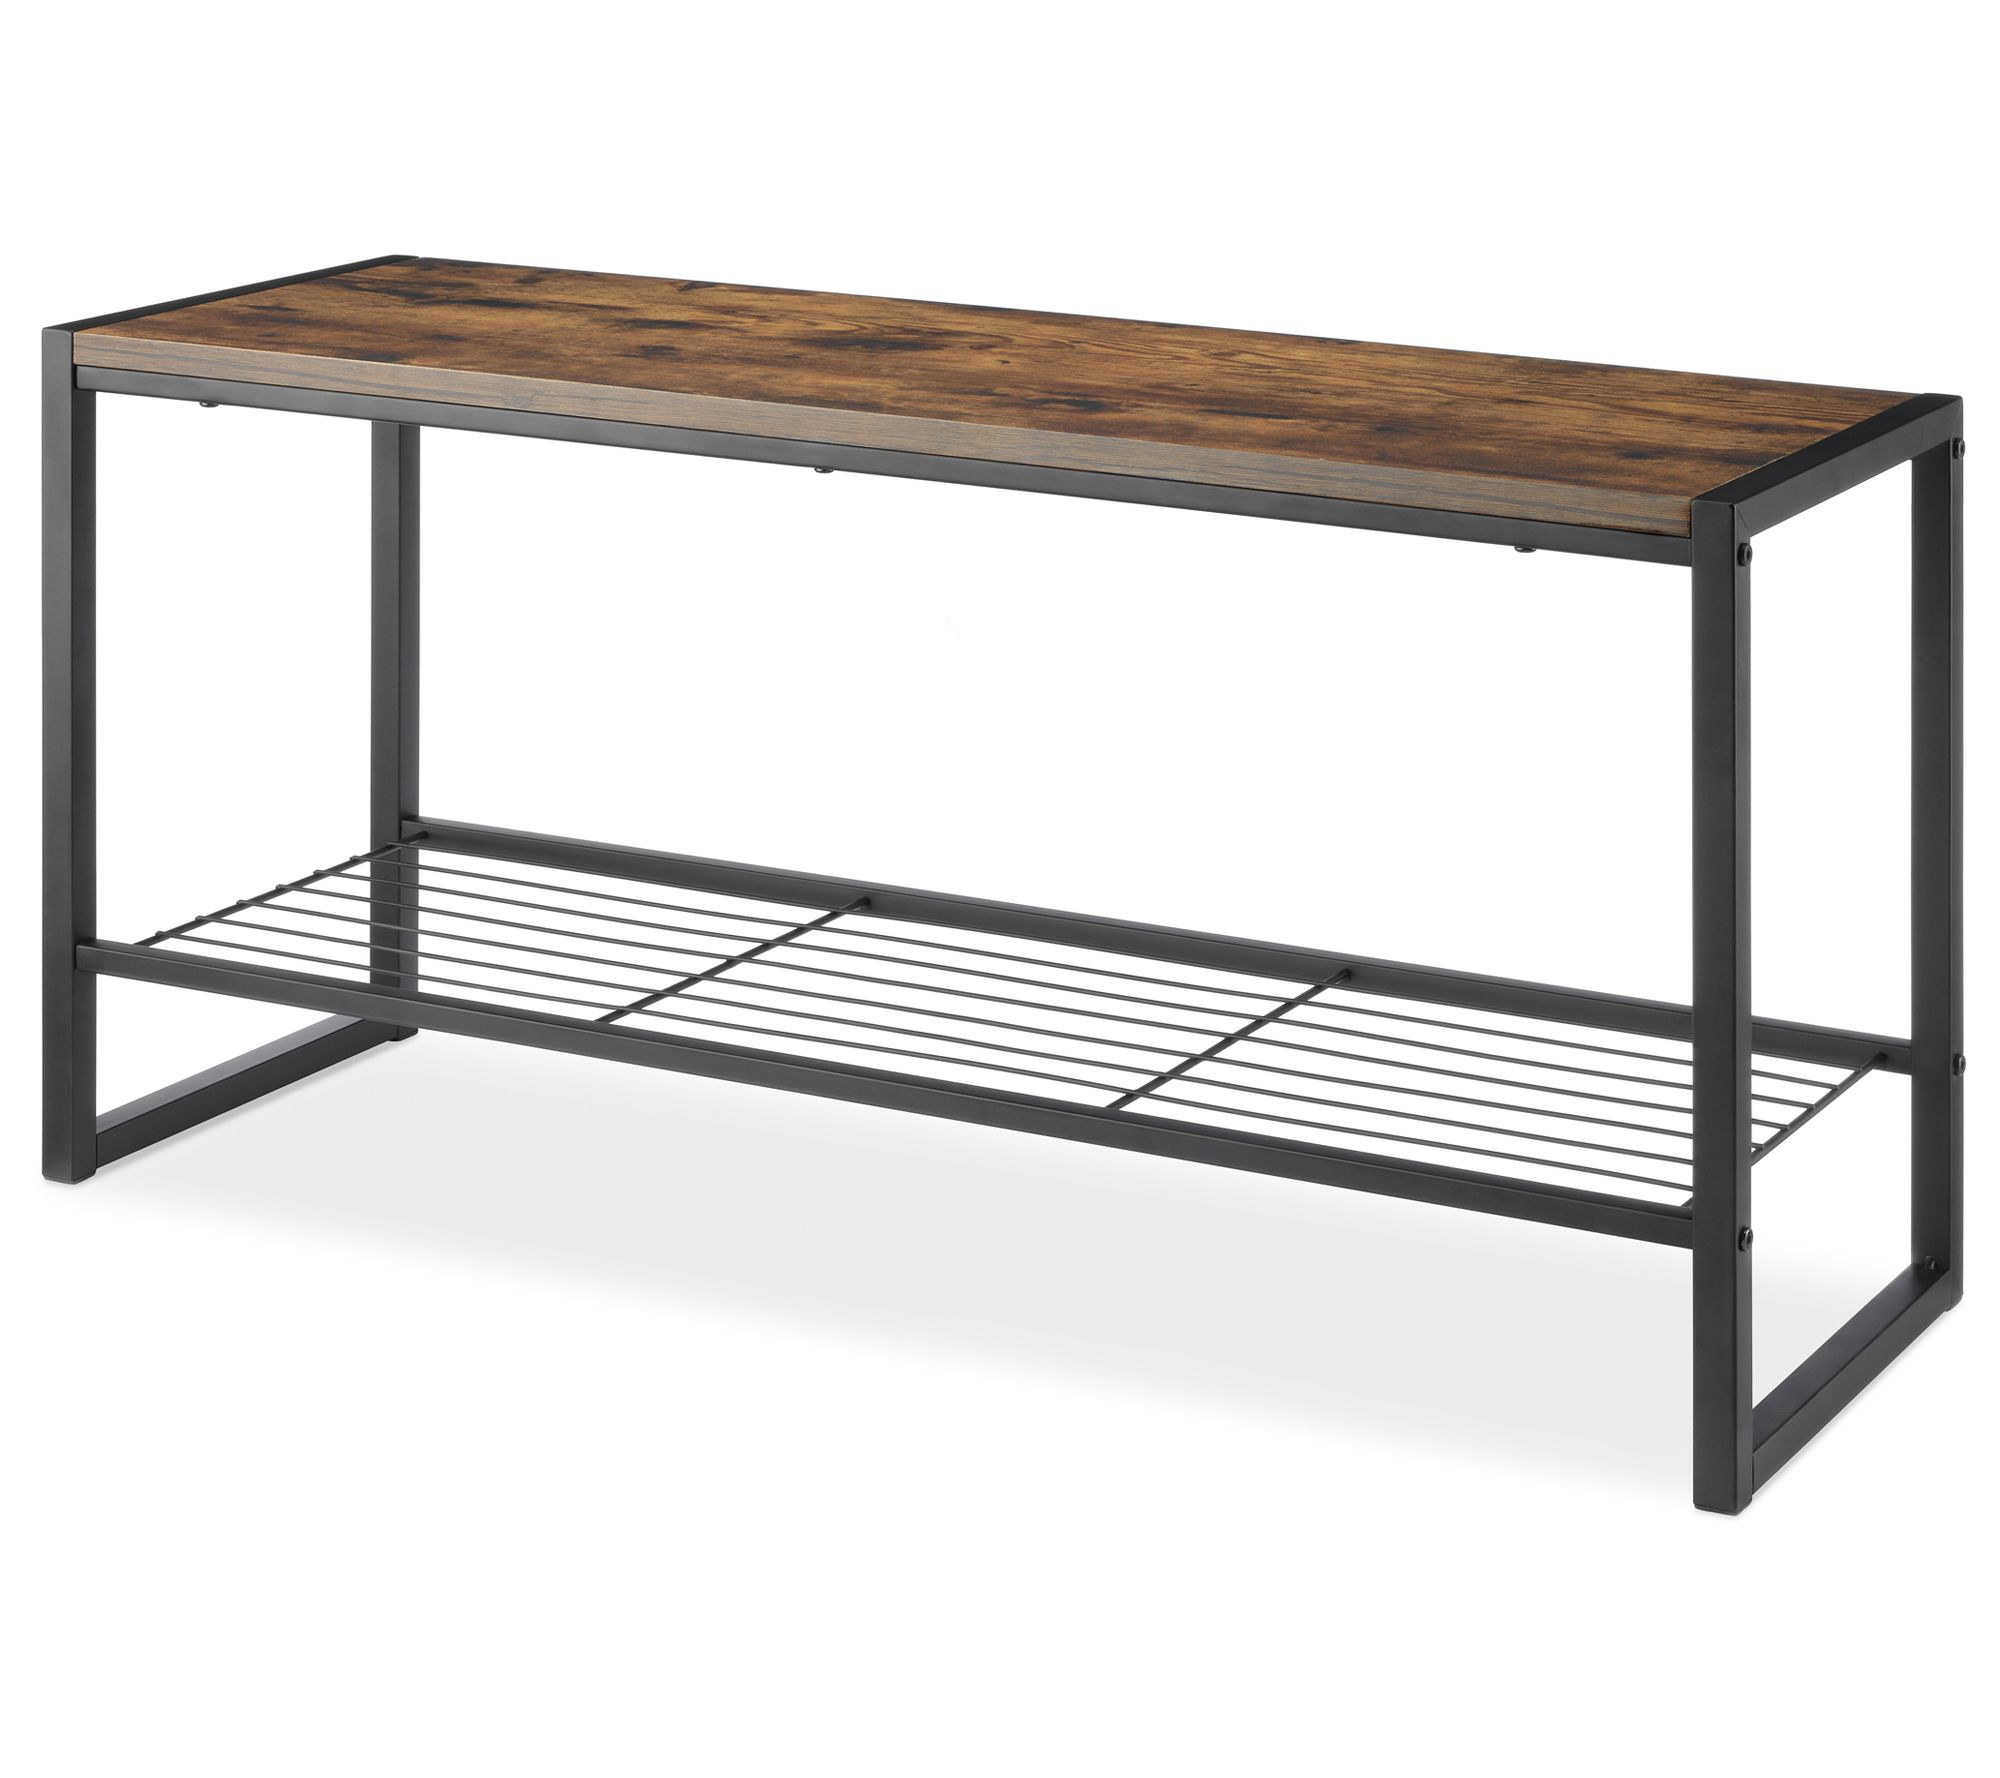 Whitmor Modern Entryway Bench With Shoe Storage Qvc Com,What Is The Best Paint For Kitchen Cabinets